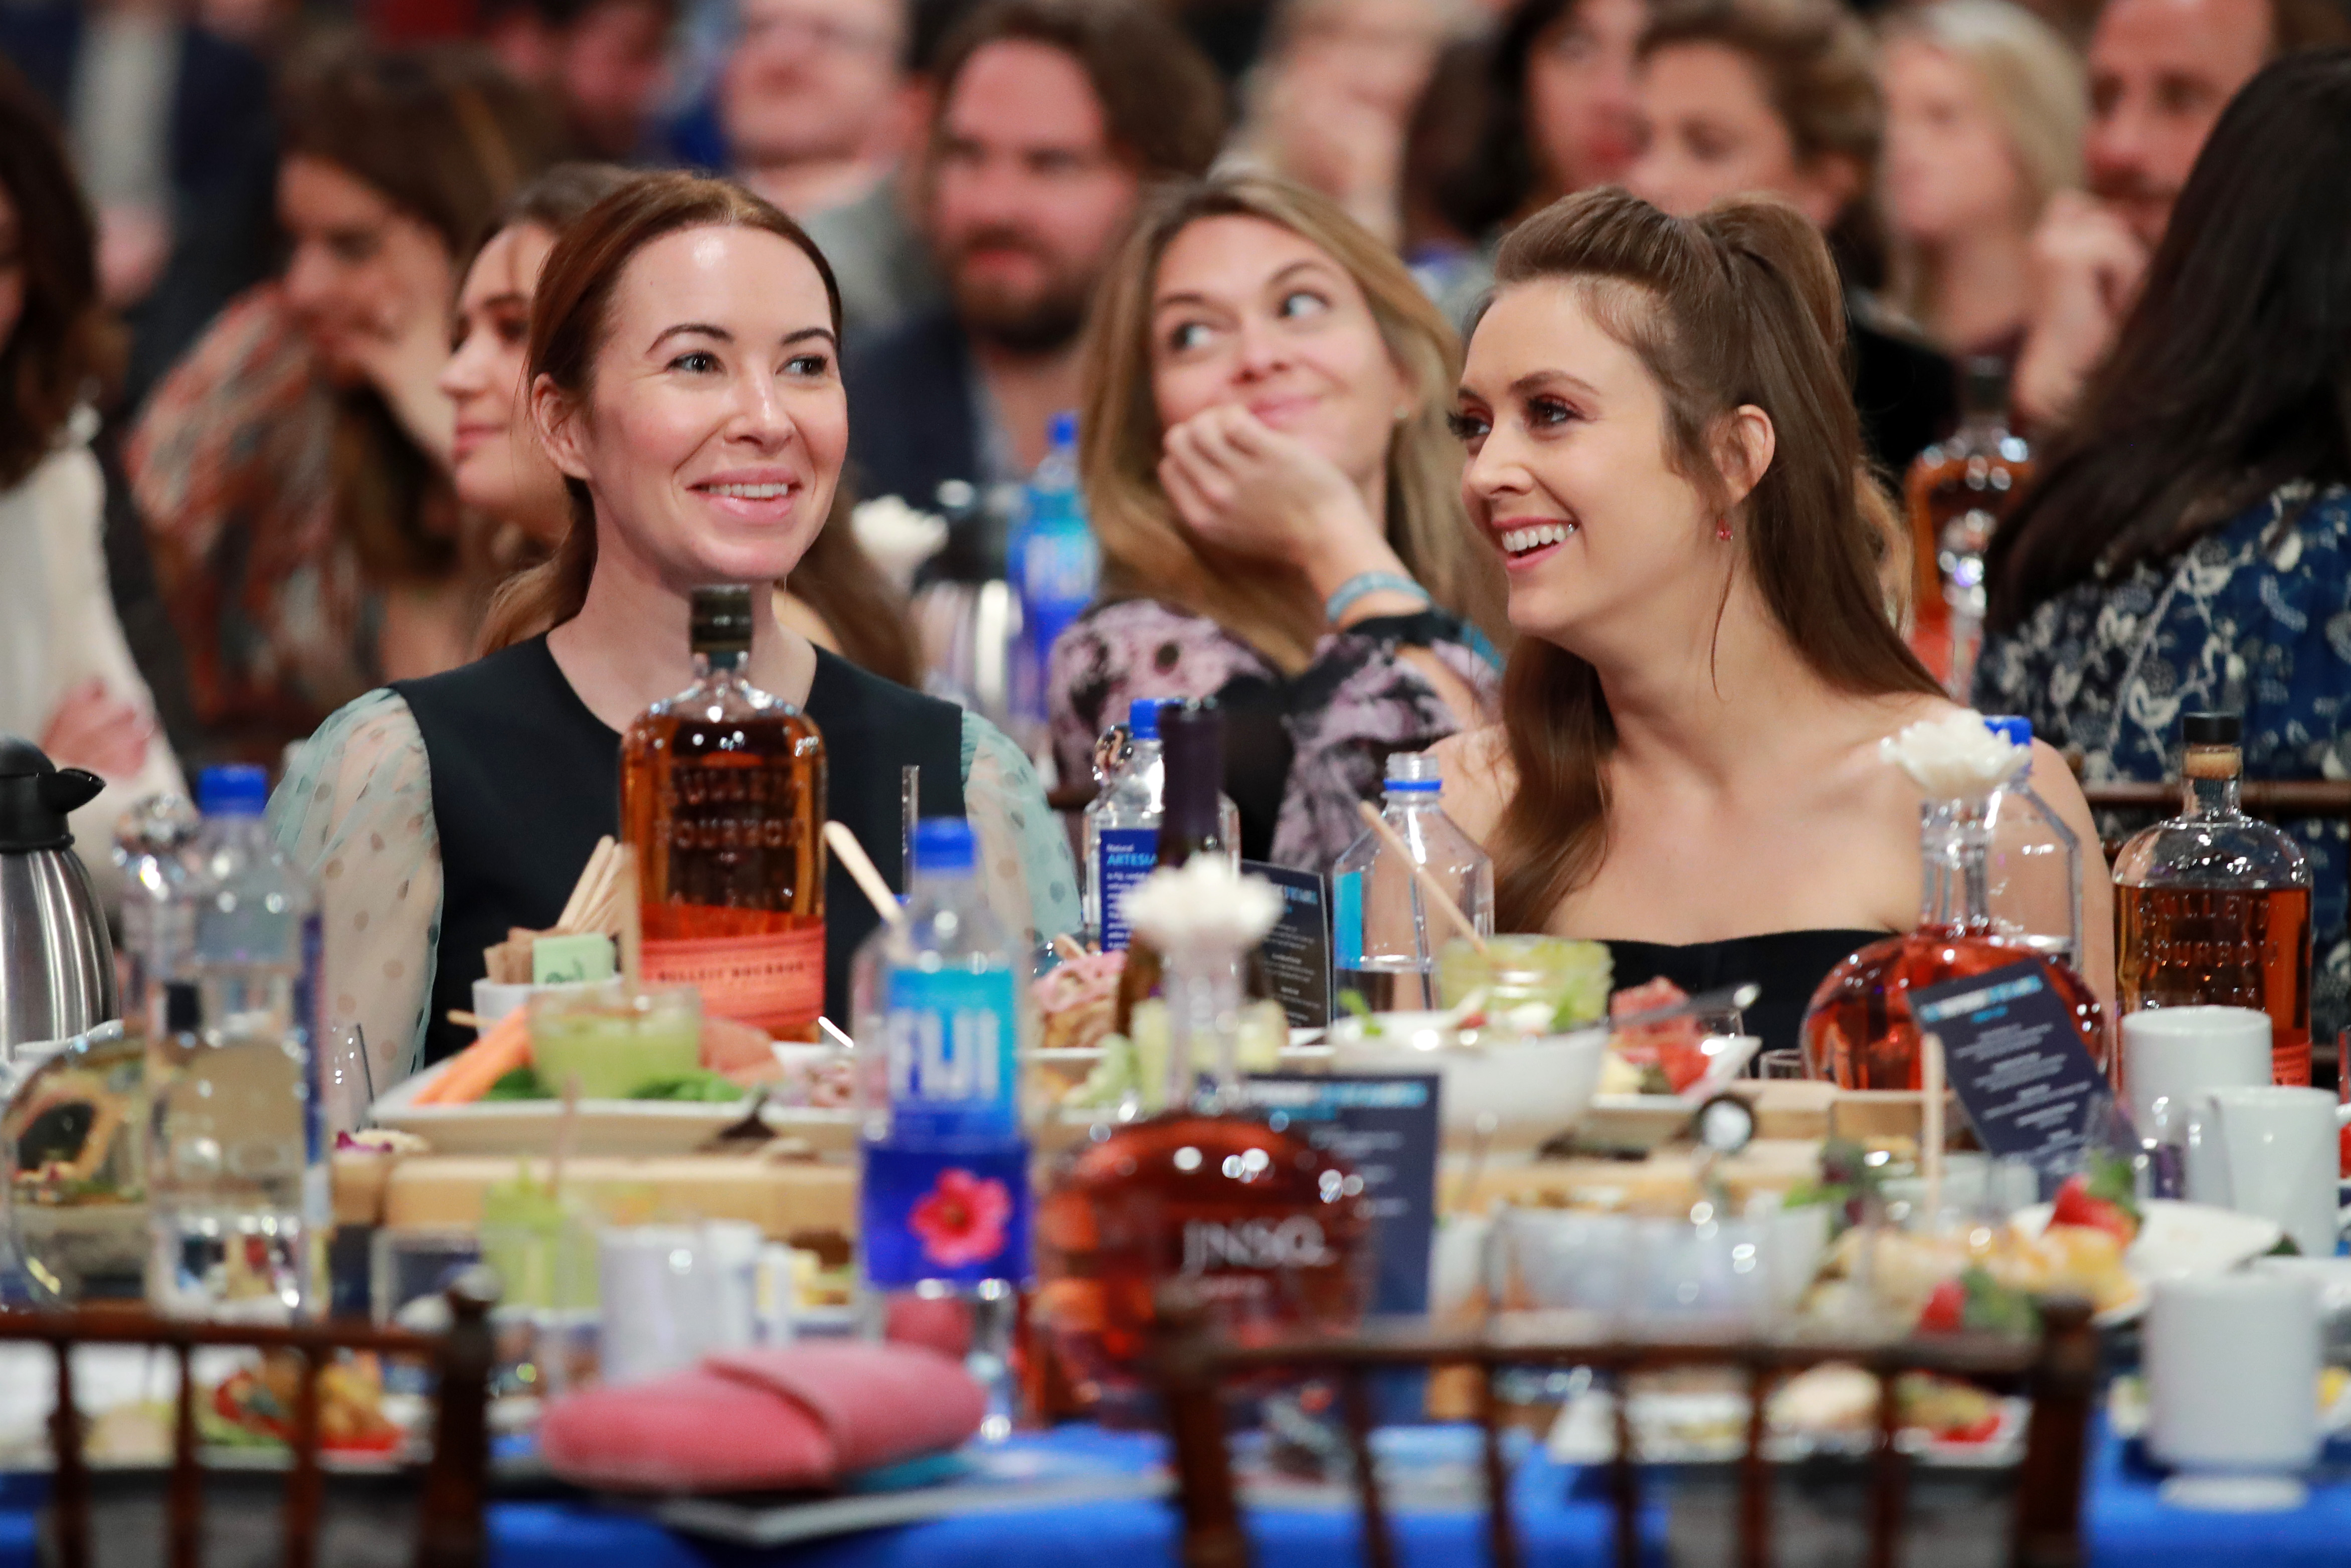 Katie Silberman and Billie Lourd at an event for 35th Film Independent Spirit Awards (2020)